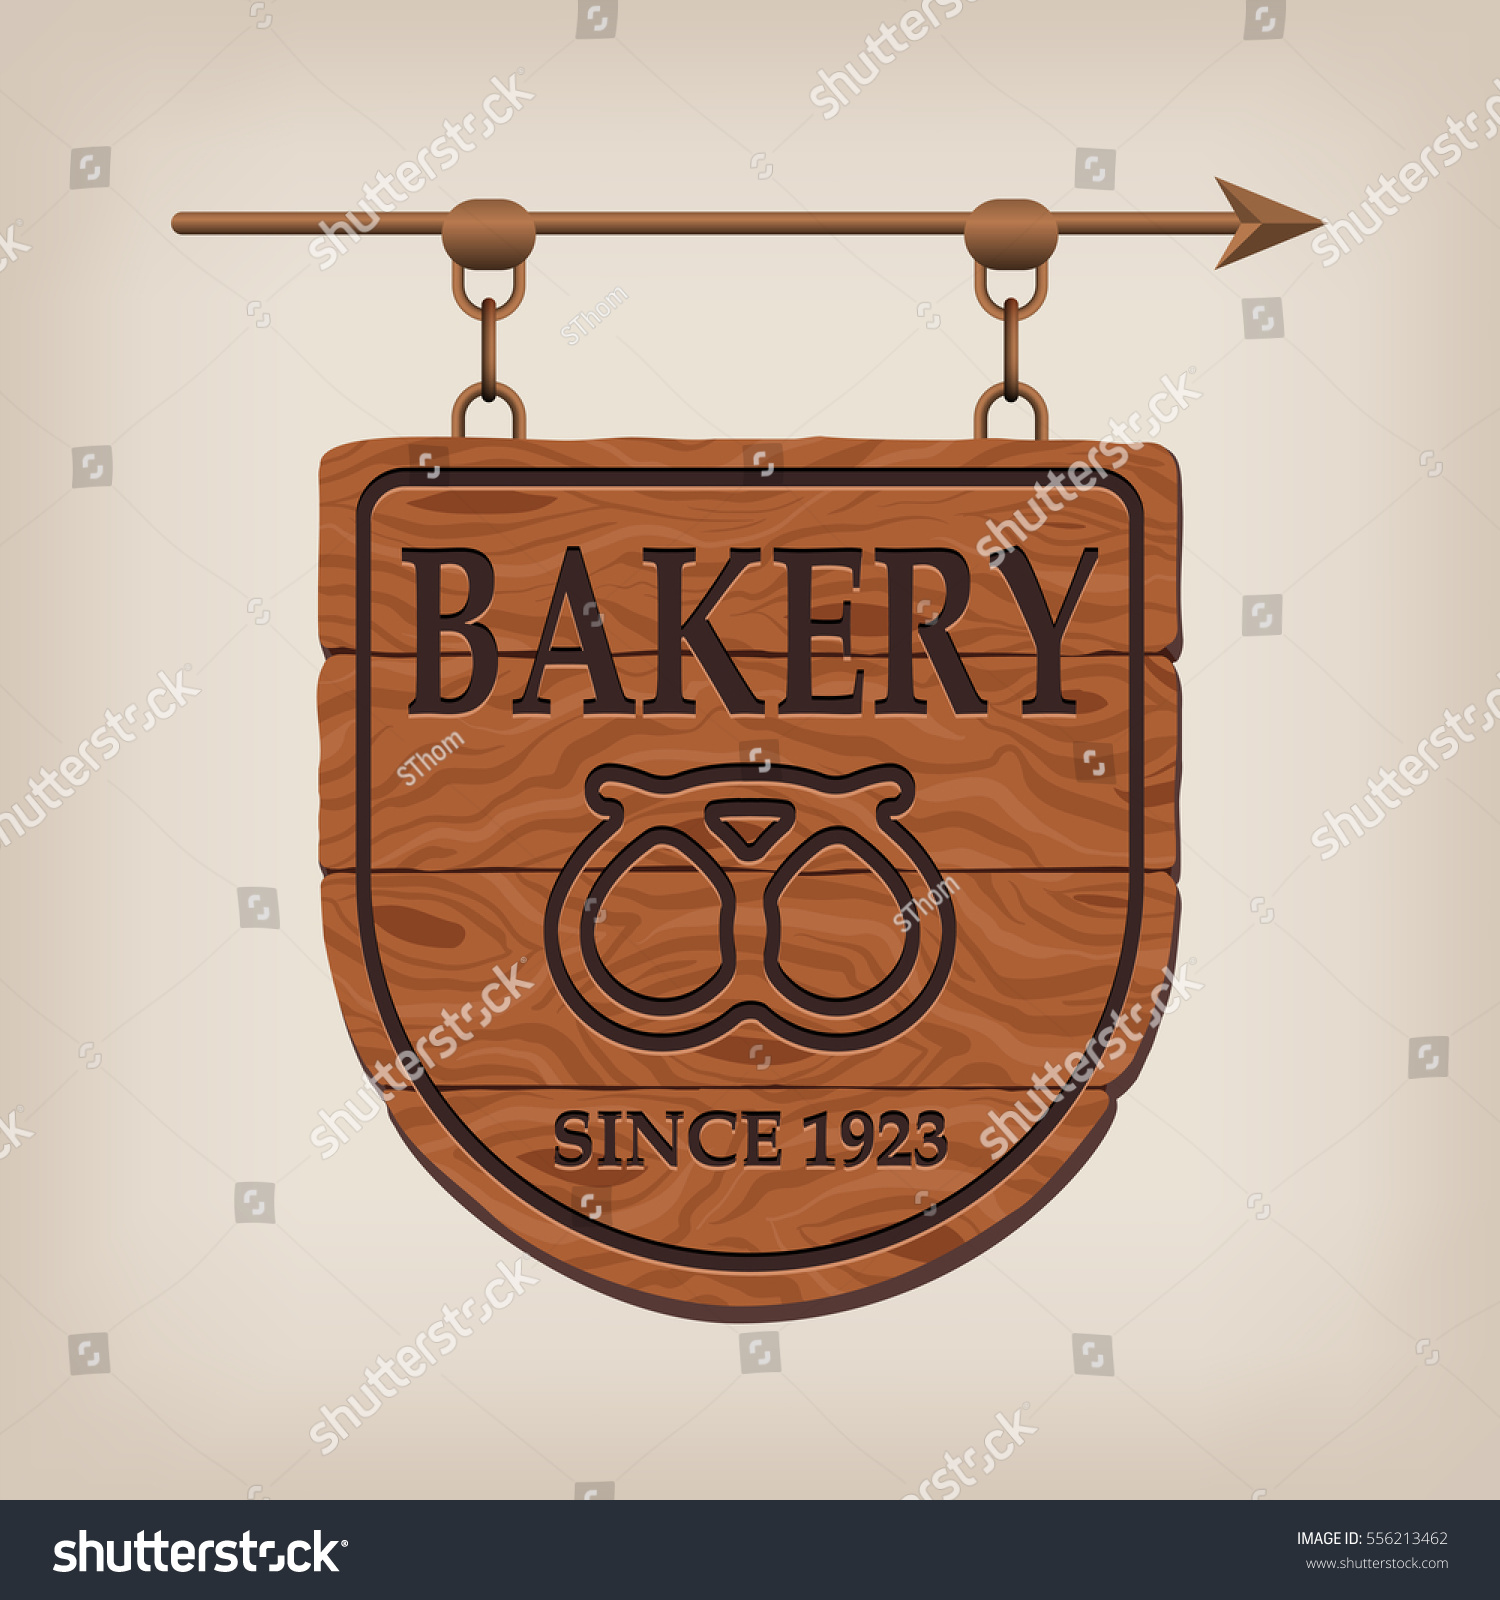 Wooden Bakery Signs Vintage